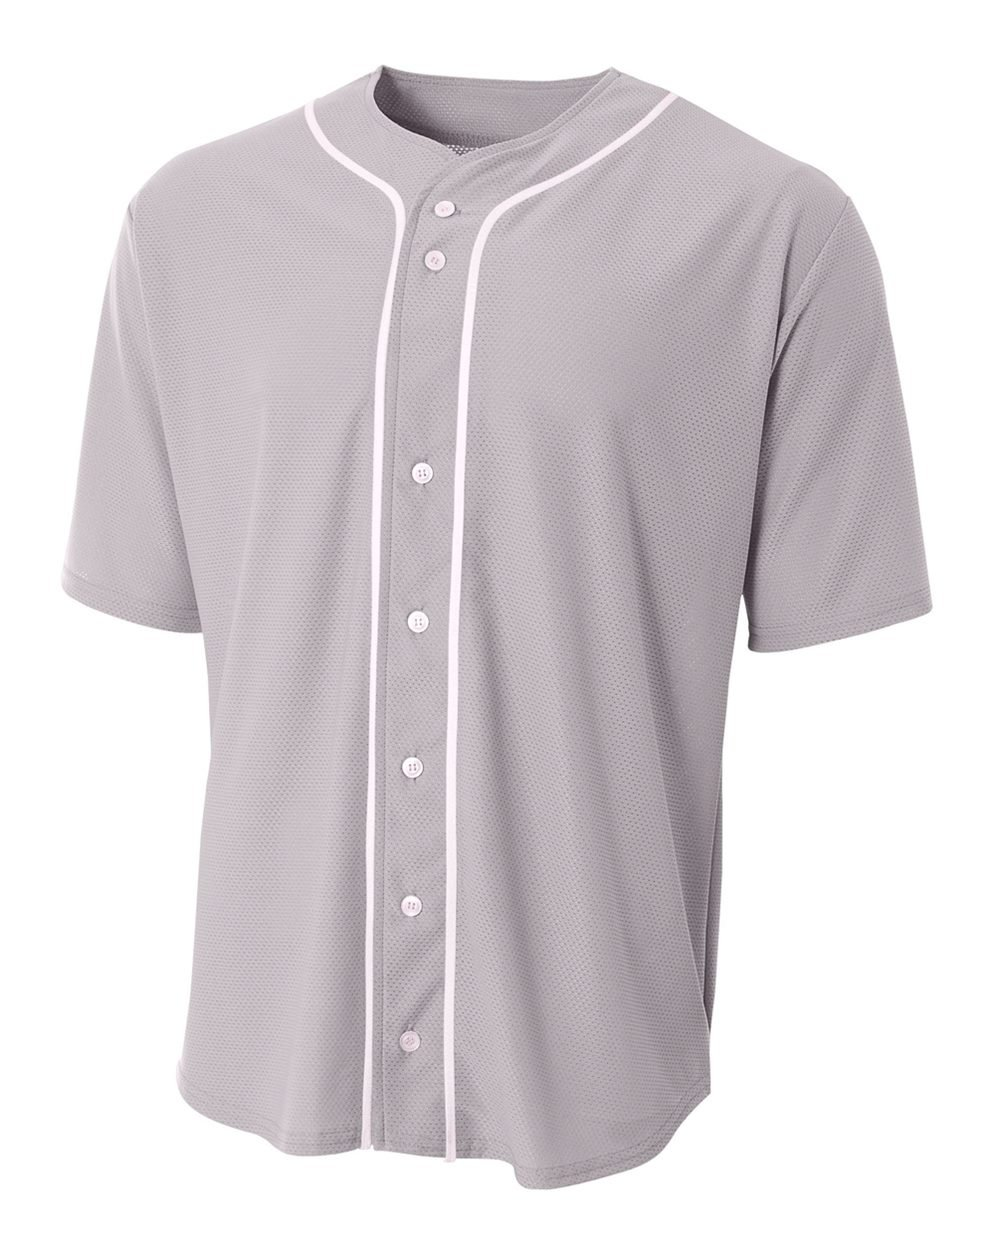 A4 Sportswear Grey Adult XL (Blank) Full-Button Baseball Wicking Jersey by A4 Sportswear